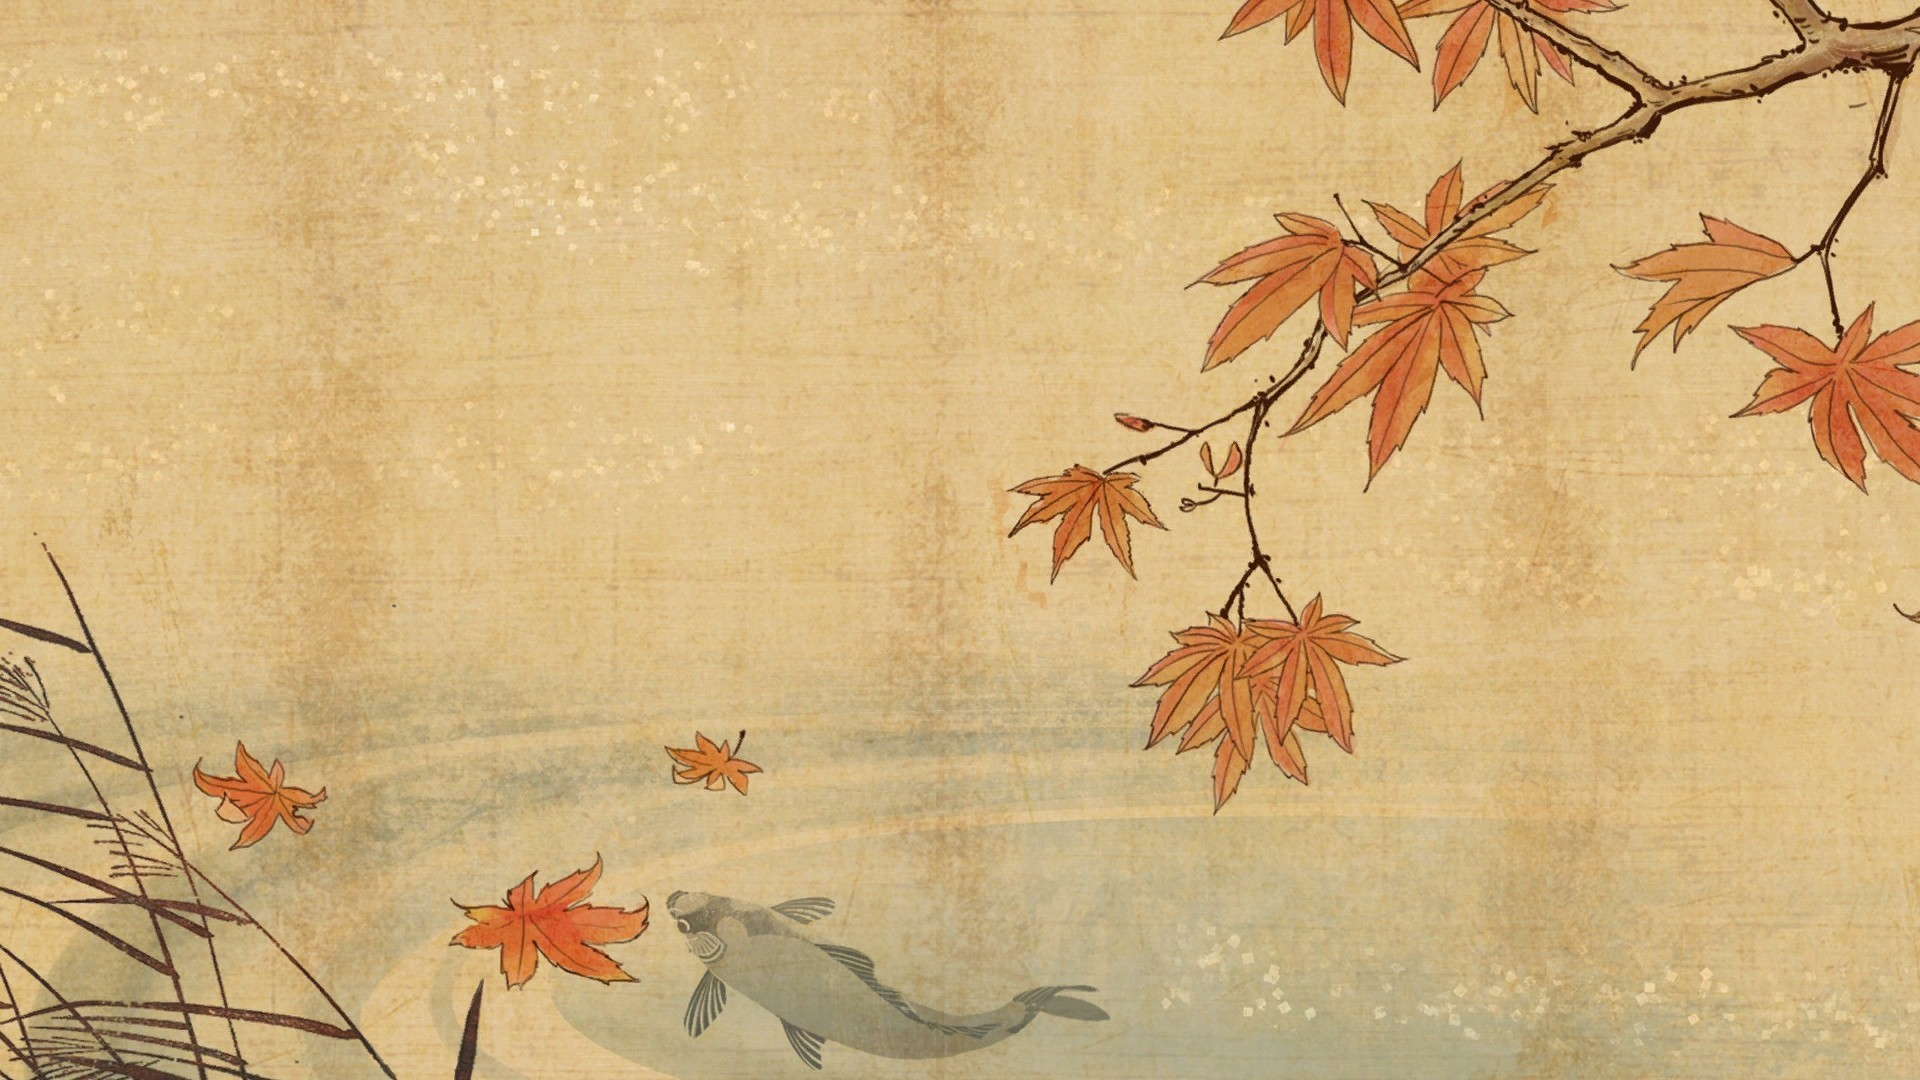 1920x1080 Koi fish and autumn leaves HD Wallpaper  Koi ...